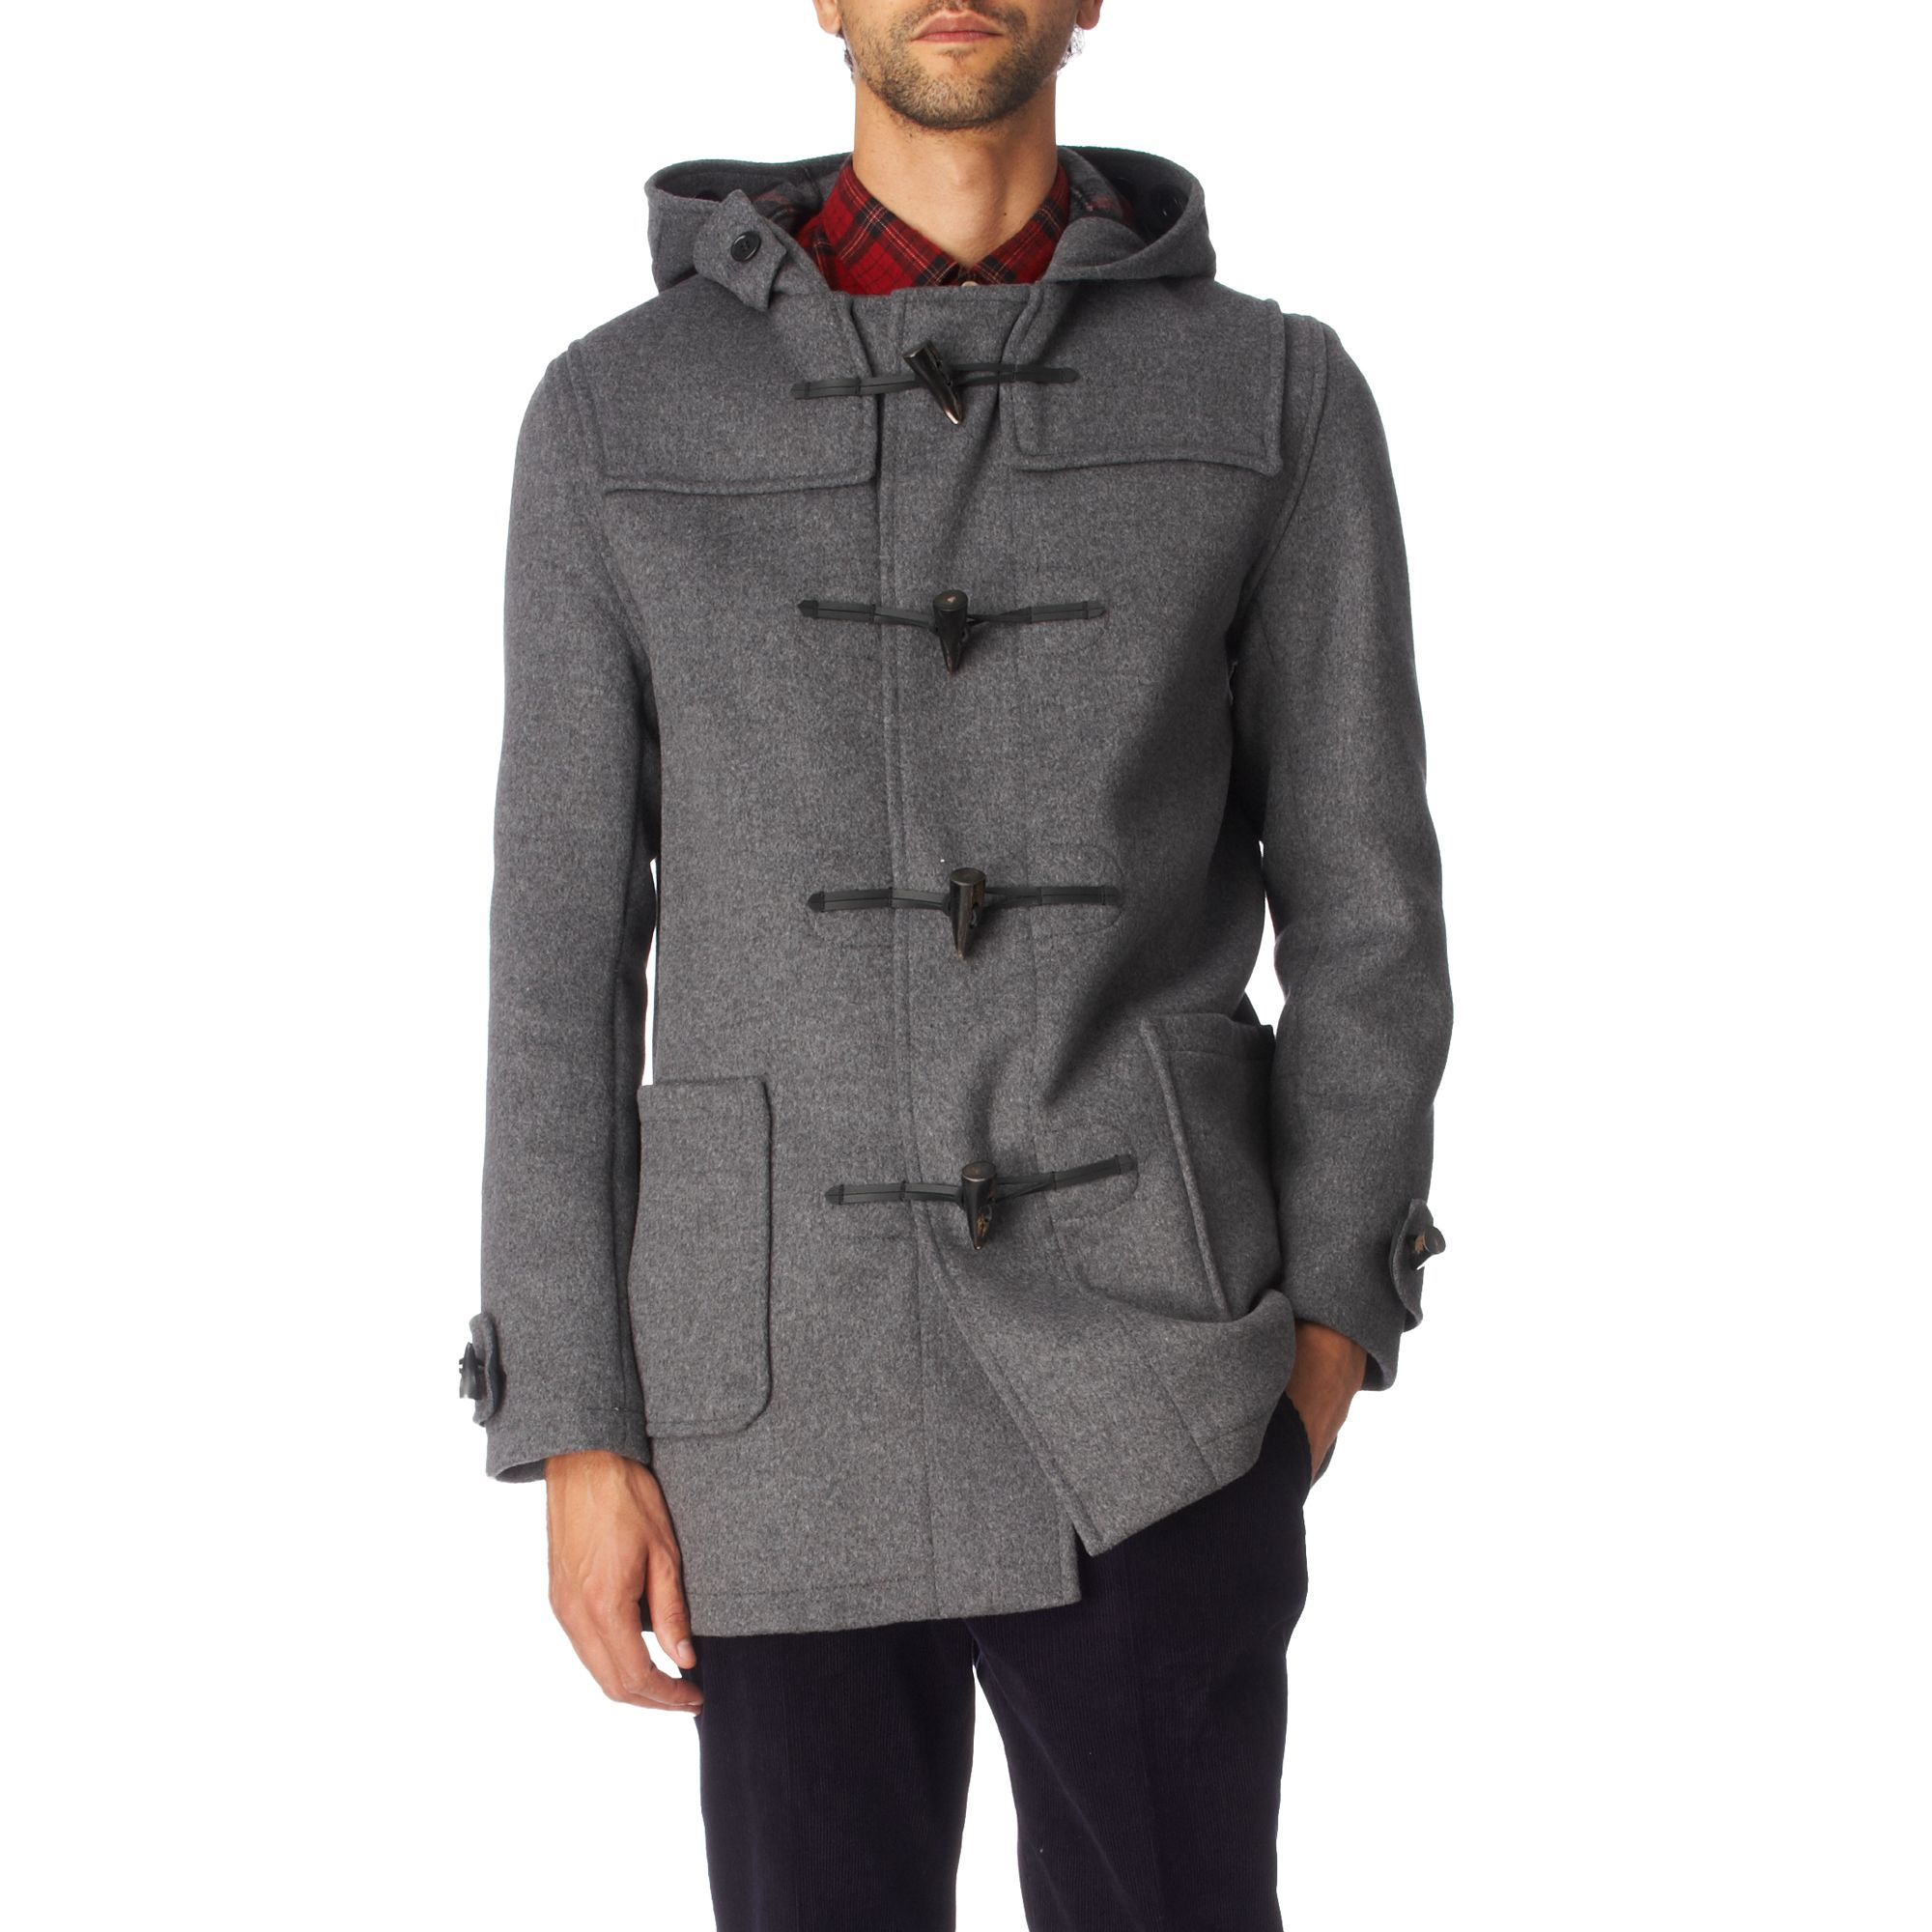 Gloverall Duffle Coat in Gray for Men - Lyst